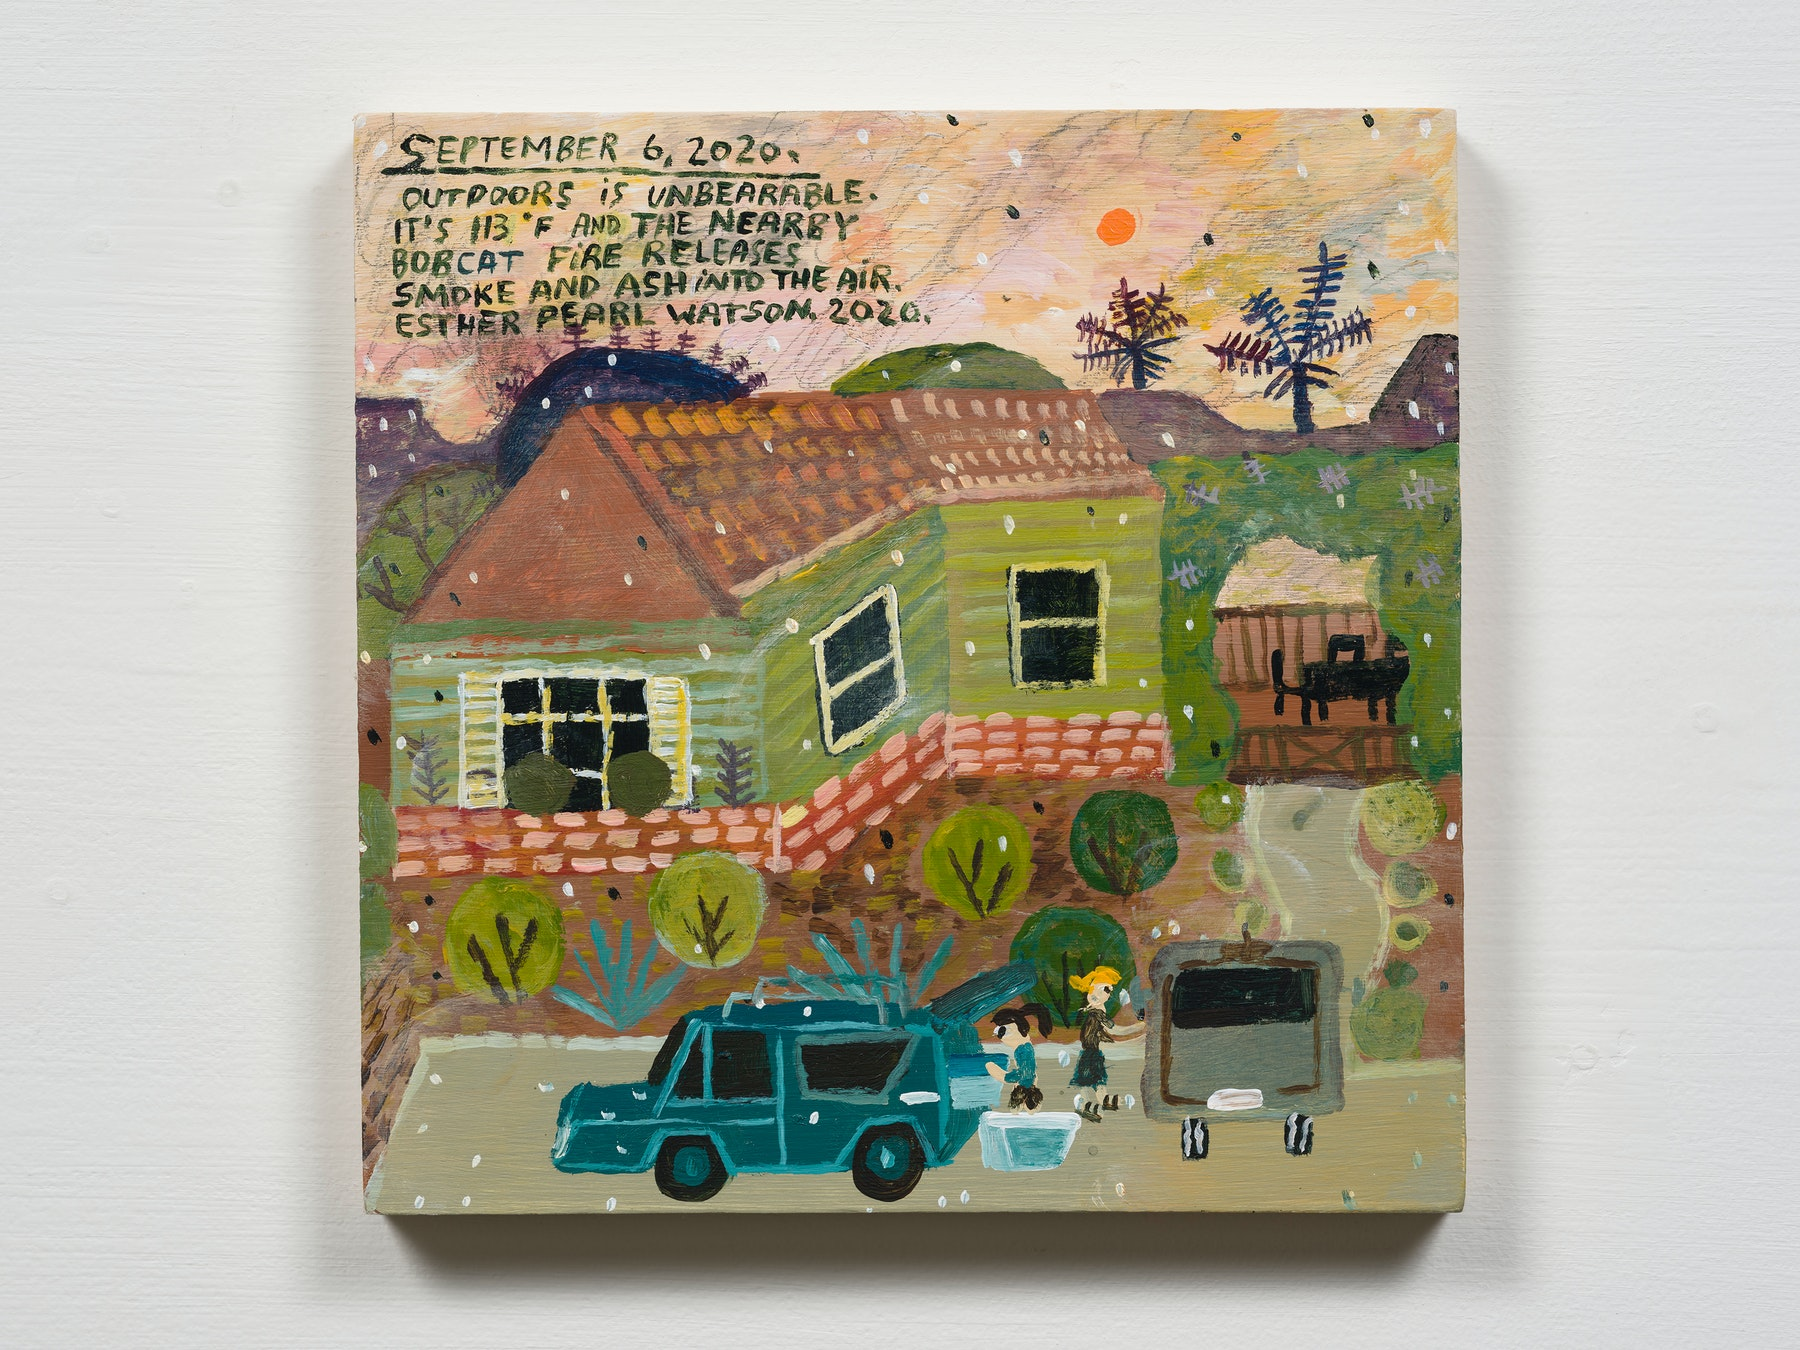 """Esther Pearl Watson """"September 6, Outdoors Is Unbearable,"""" 2020 Acrylic with pencil on panel 8 x 8"""" [HxW] (20.32 x 20.32 cm) Inventory #EPW334 Courtesy of the artist and Vielmetter Los Angeles Photo credit: Jeff Mclane"""